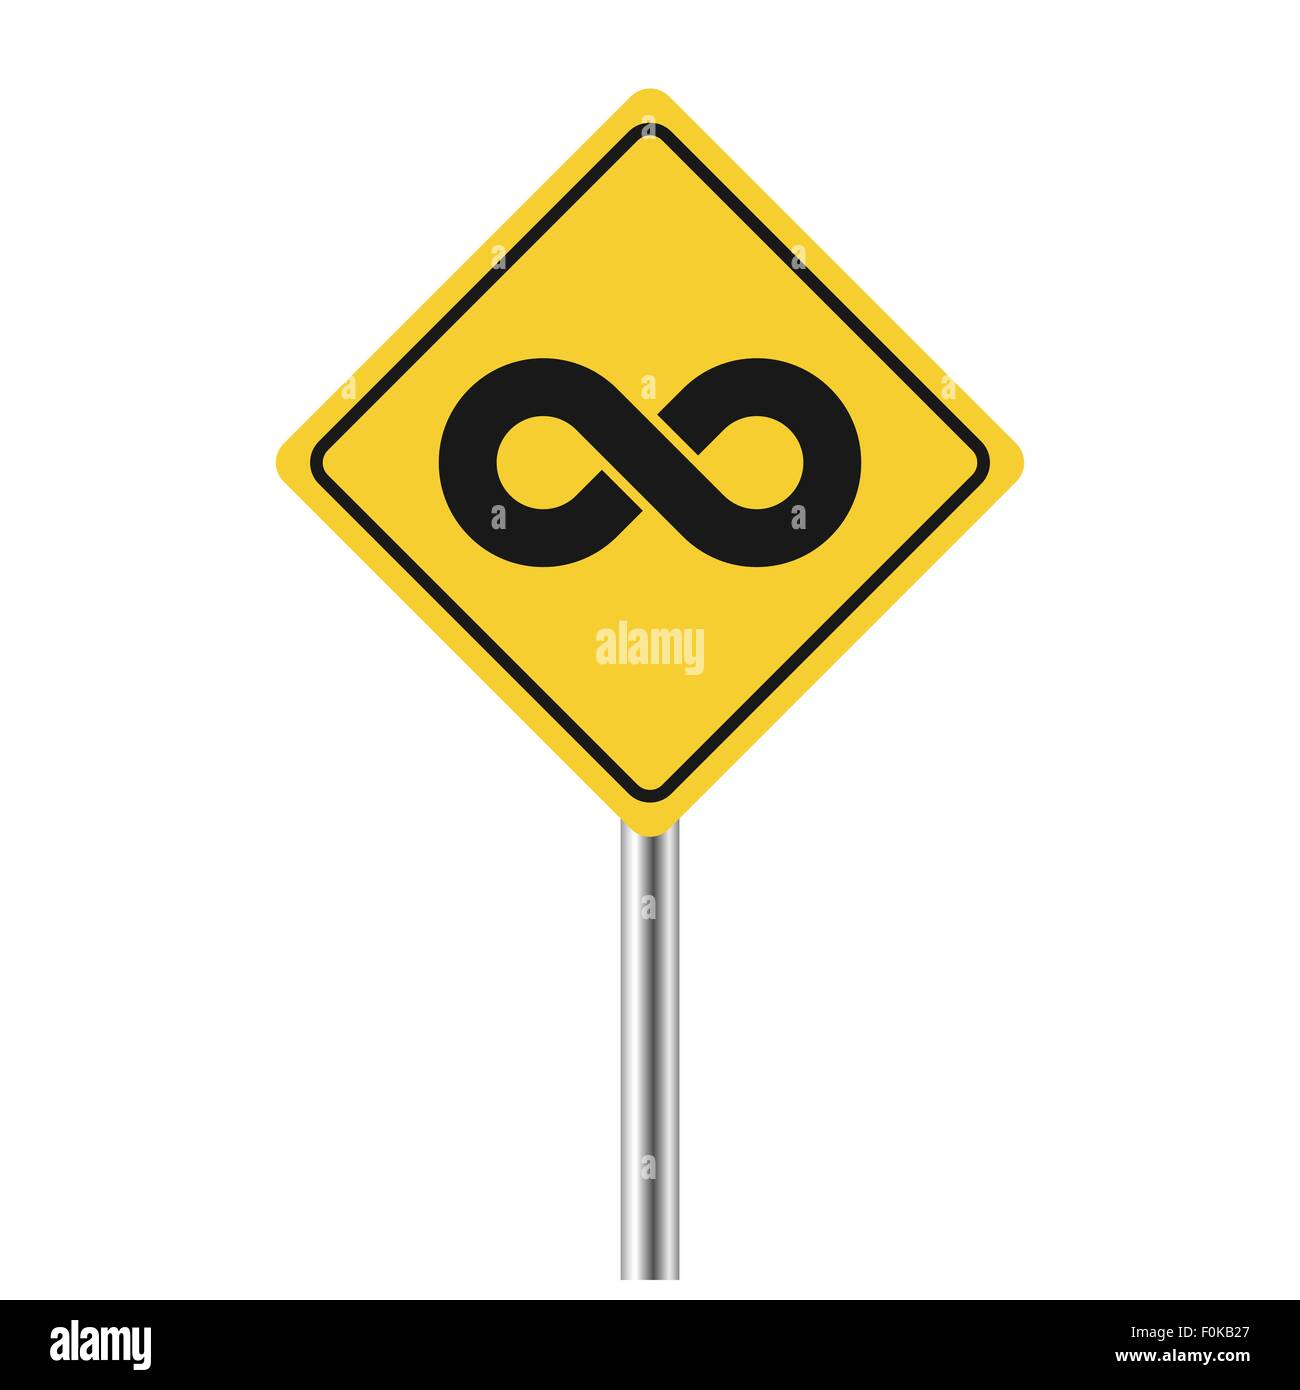 infinity symbol on yellow road sign vector illustration - Stock Image